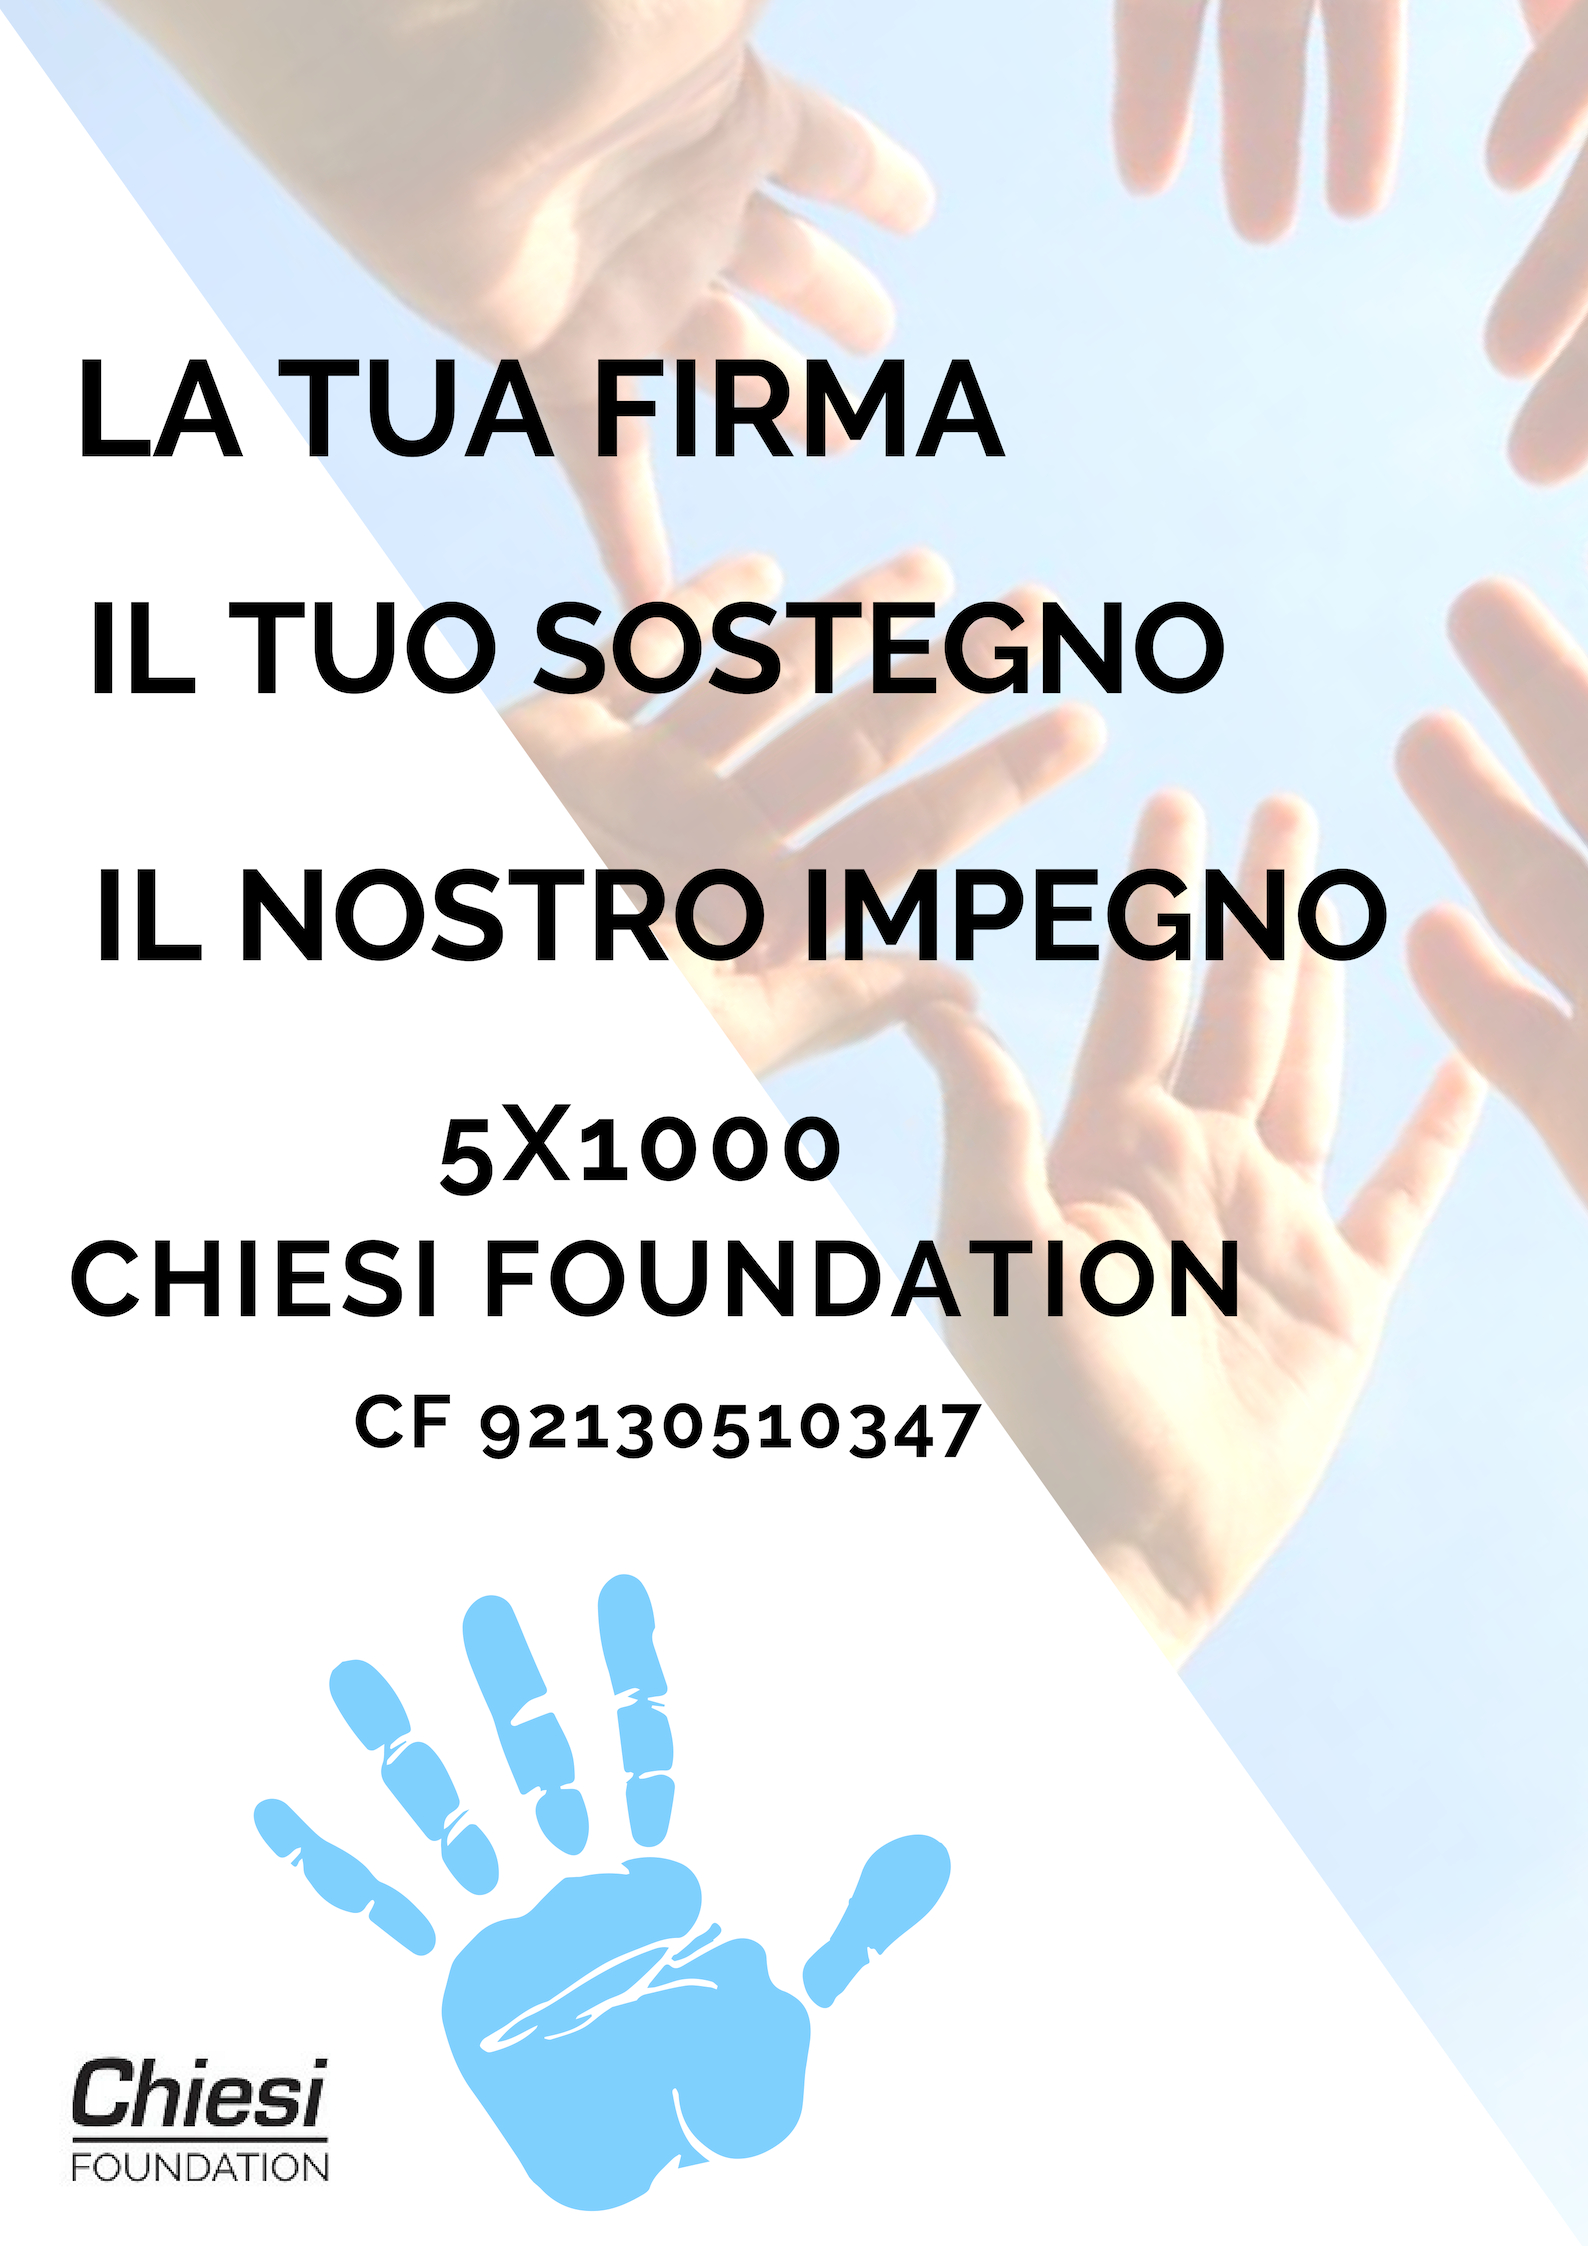 5X1000 to the Chiesi Foundation